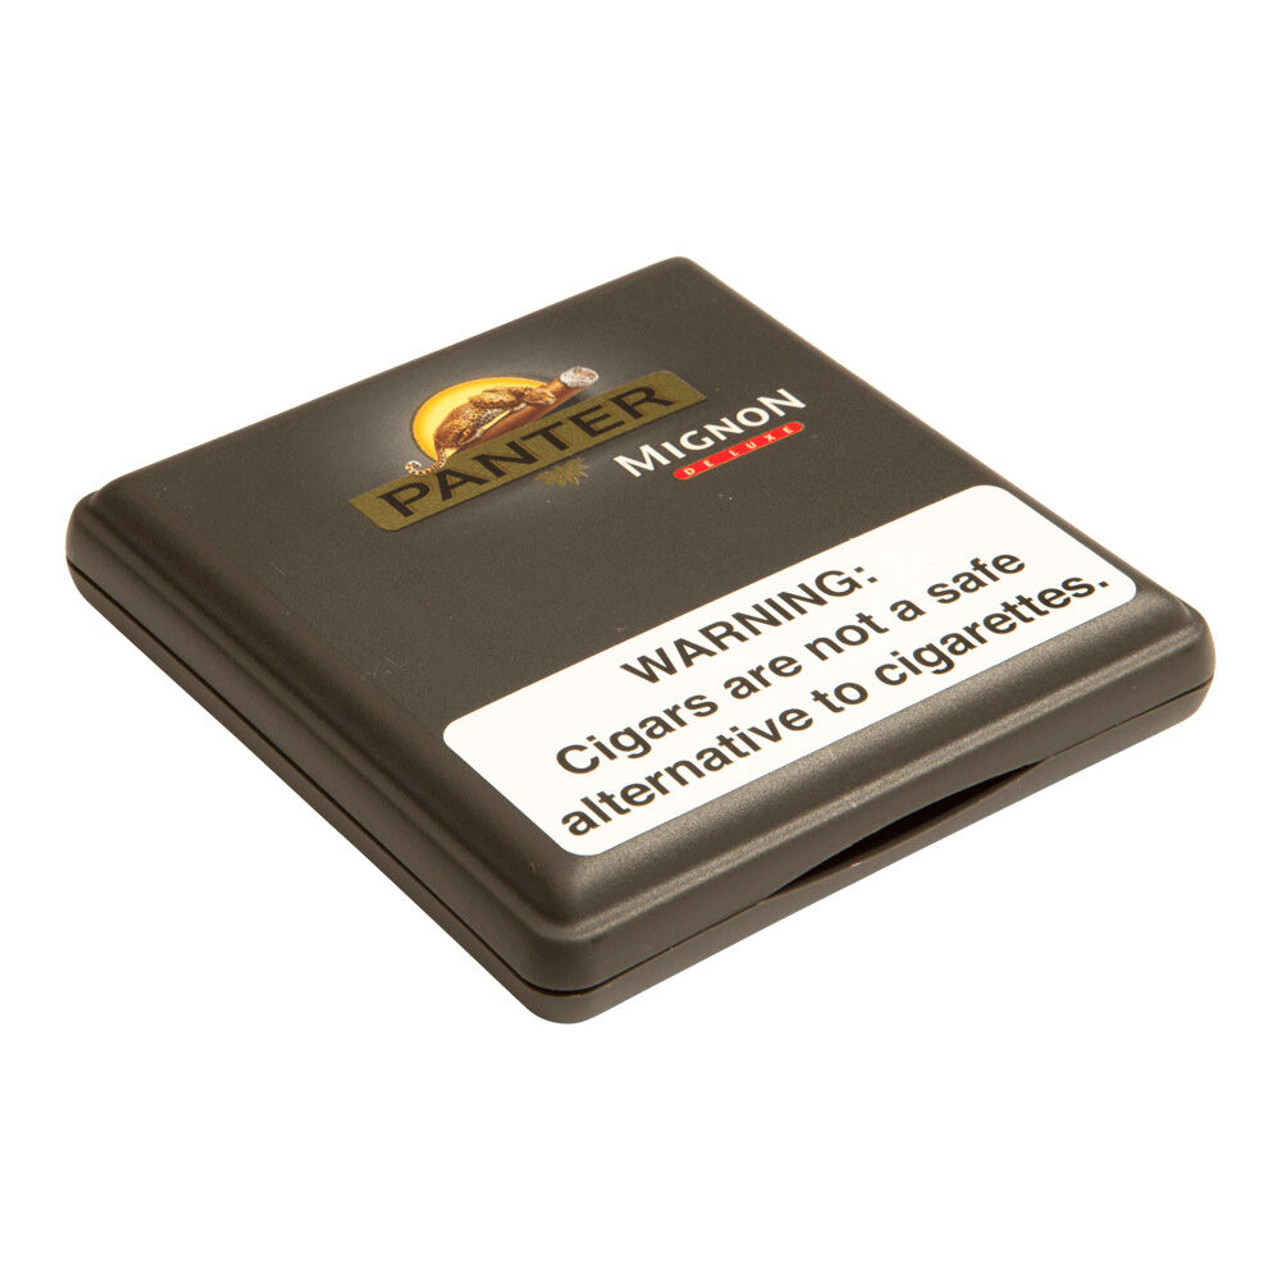 Panter Mignon Deluxe Cigars - 3.5 x 20 (10 Tins of 20 (200 total))